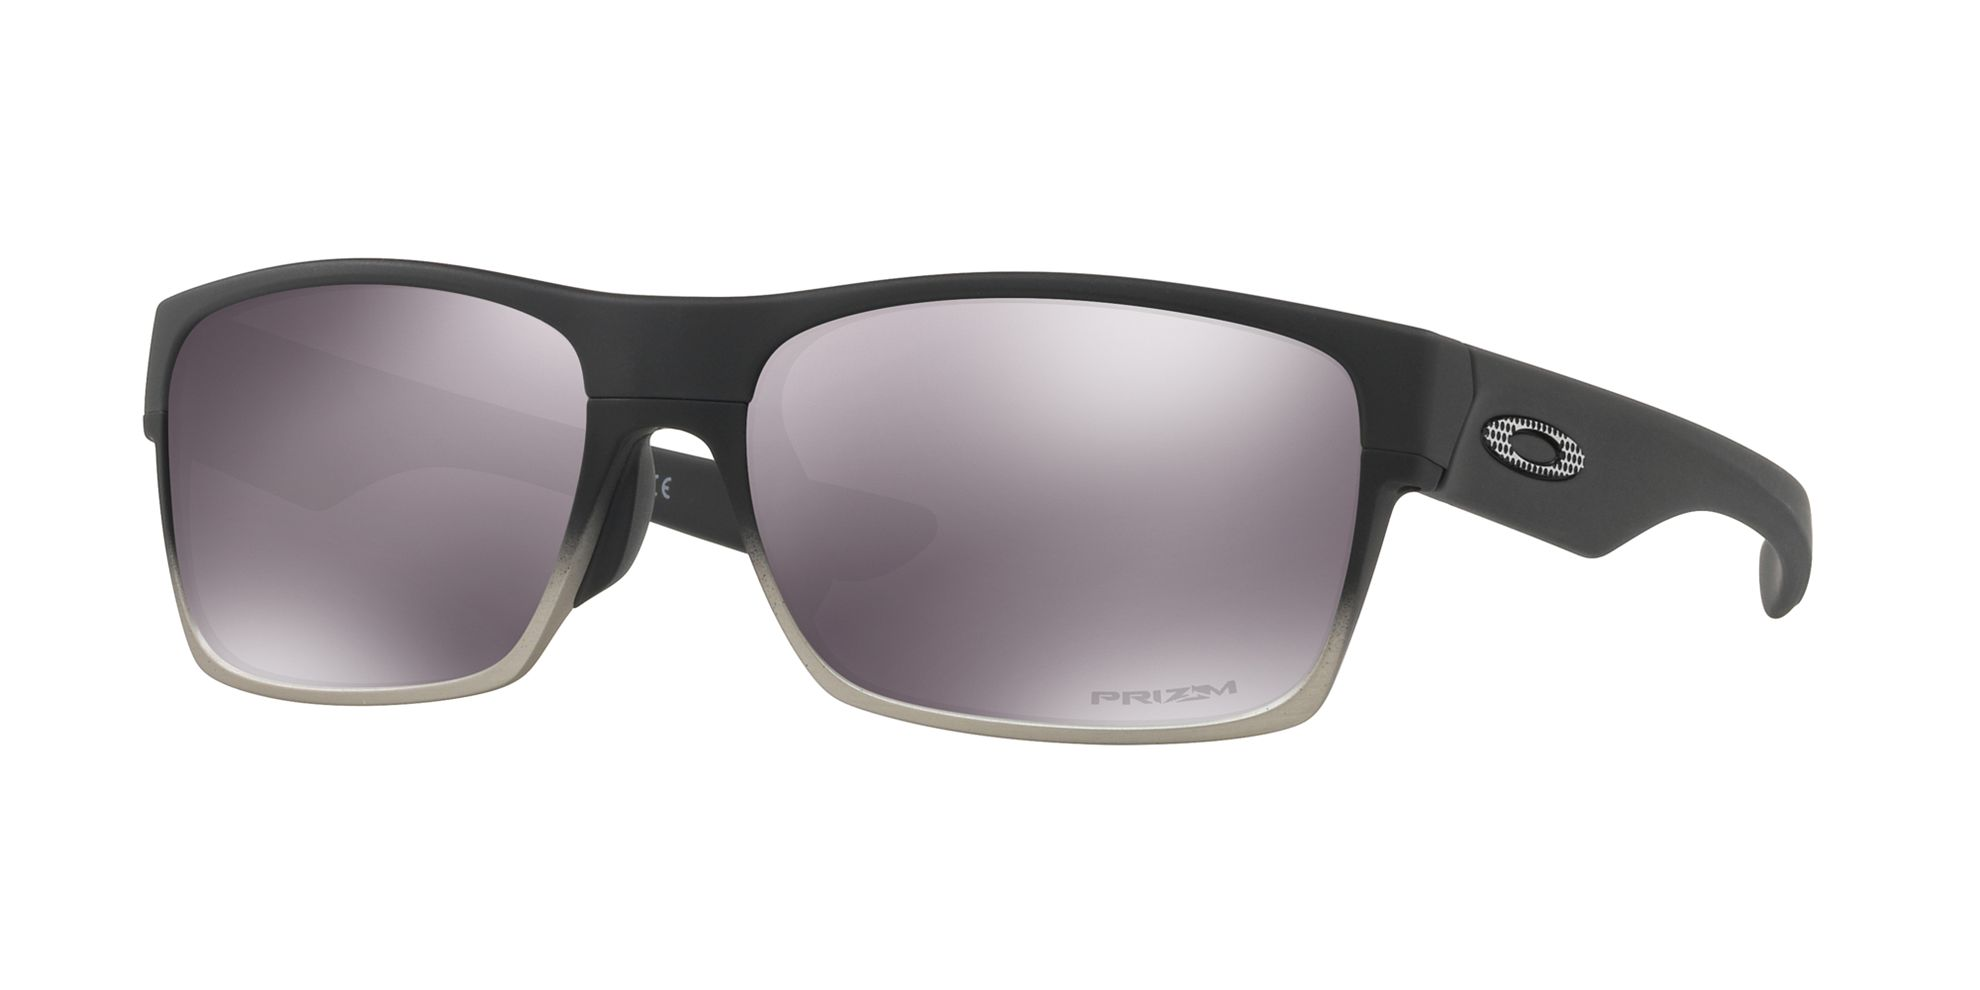 cb8965e4241 Vision In Style - Choose from various designer sunglasses ...